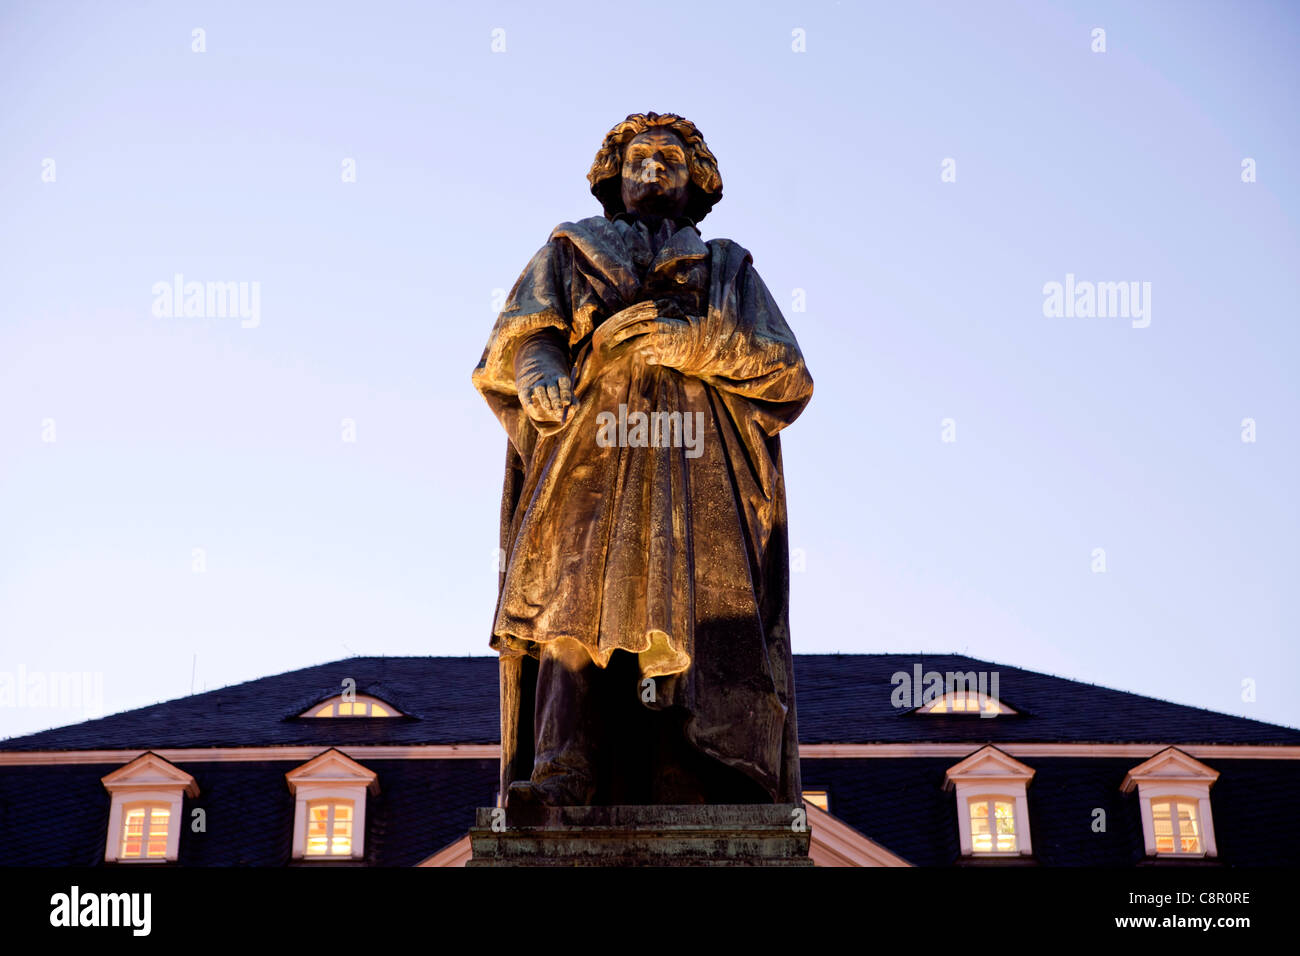 Beethoven monument on Muenster square in Bonn at Night, North Rhine-Westphalia, Germany, - Stock Image